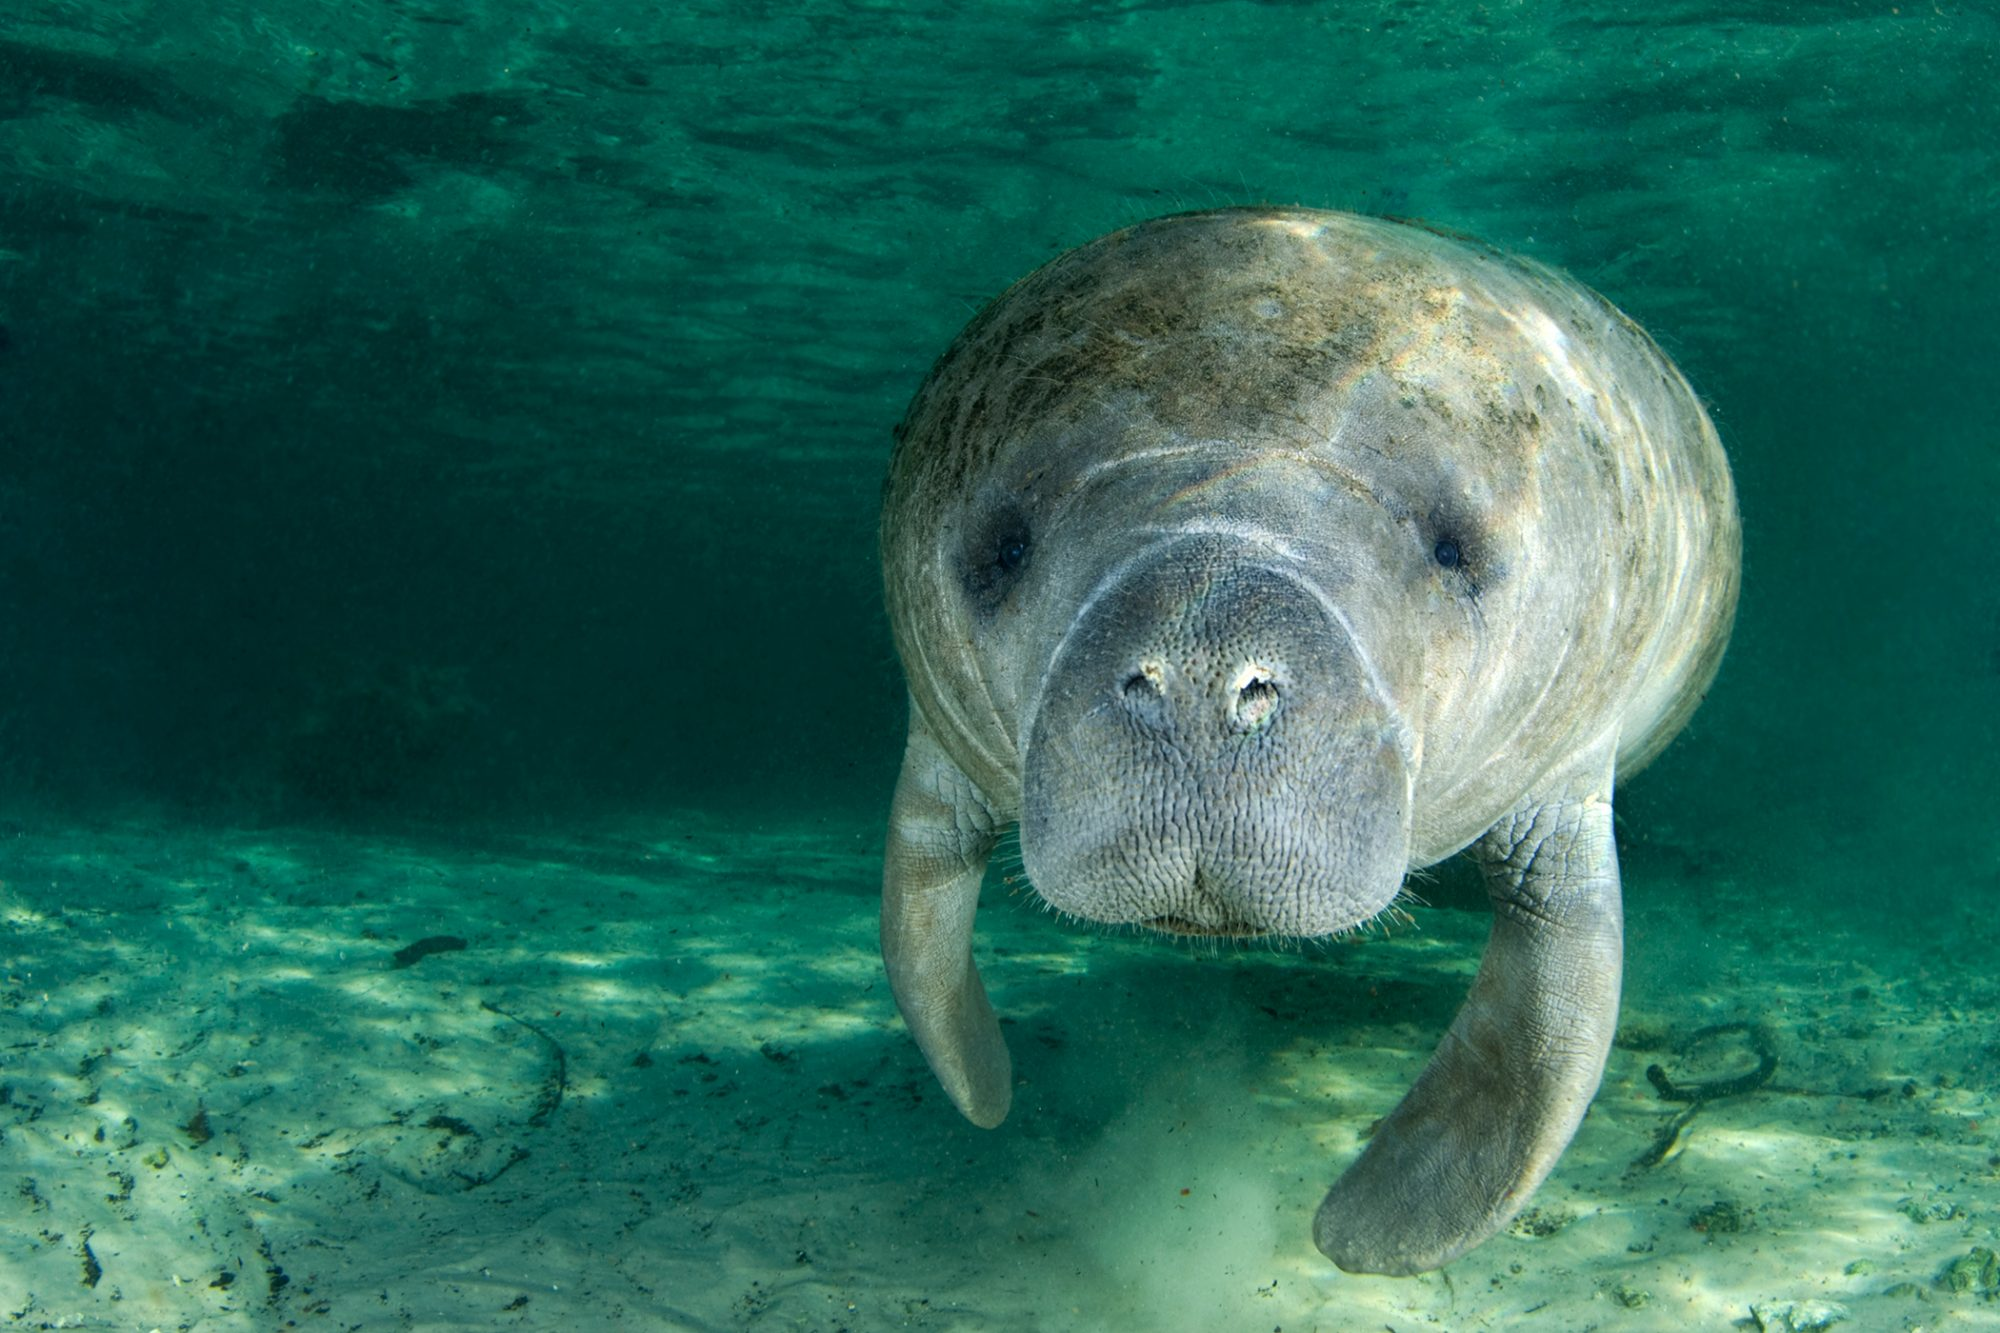 Manatee swims through water near sandy floor